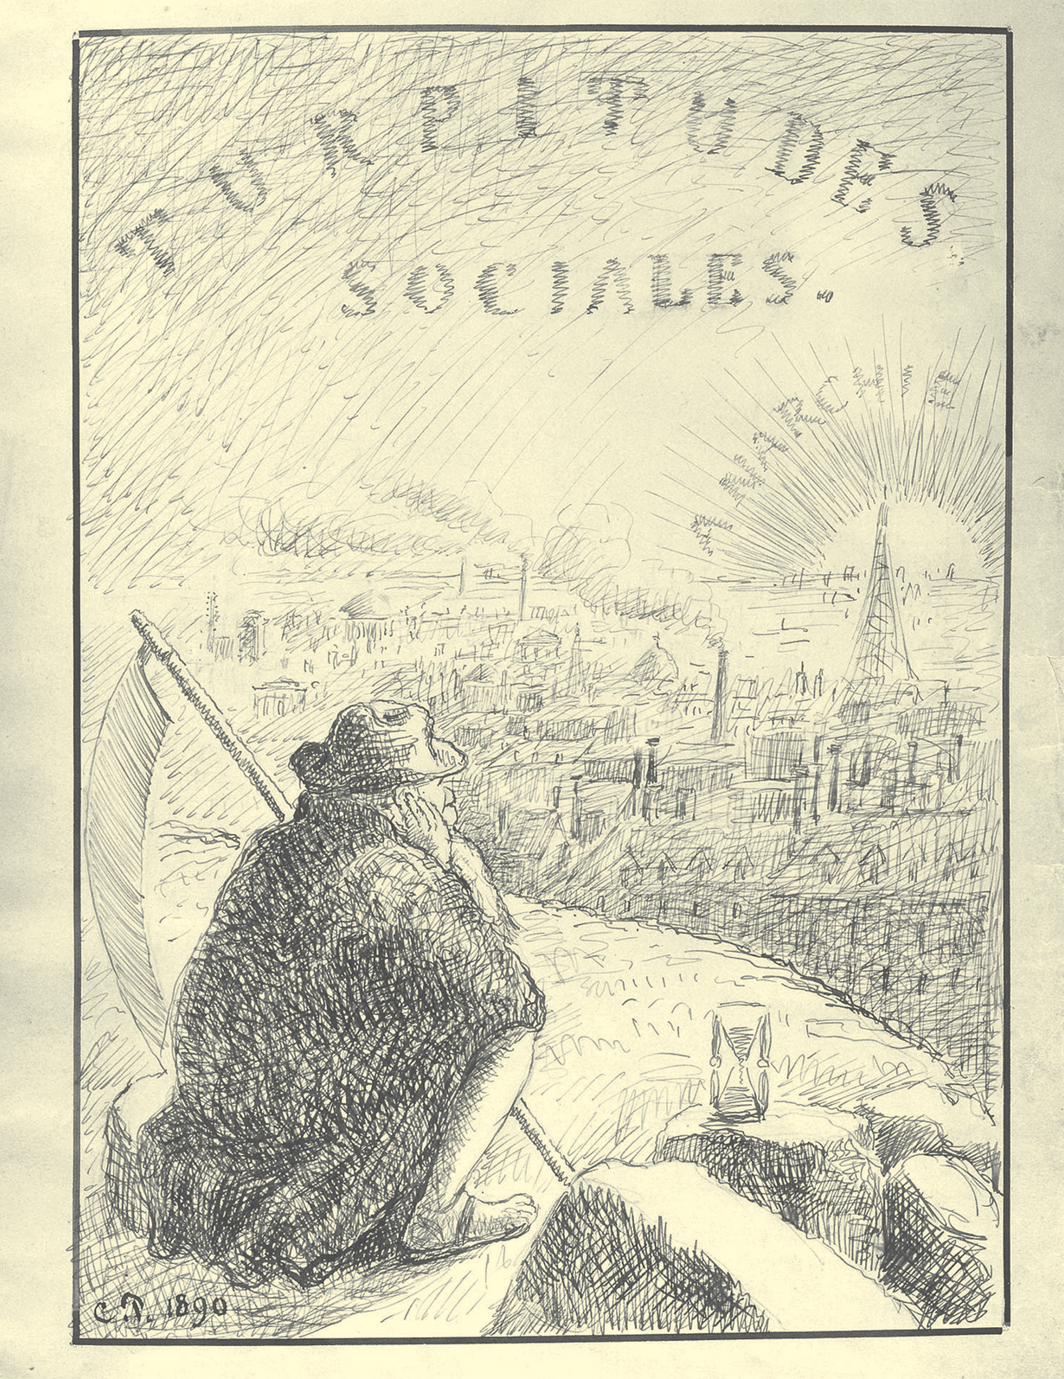 """Camille Pissarro, Turpitudes sociales (Social Disgraces) title page, 1889–90, ink and pencil on paper, 12 1⁄4 × 9 1⁄2"""". From Turpitudes sociales (Social Disgraces), 1889–90."""